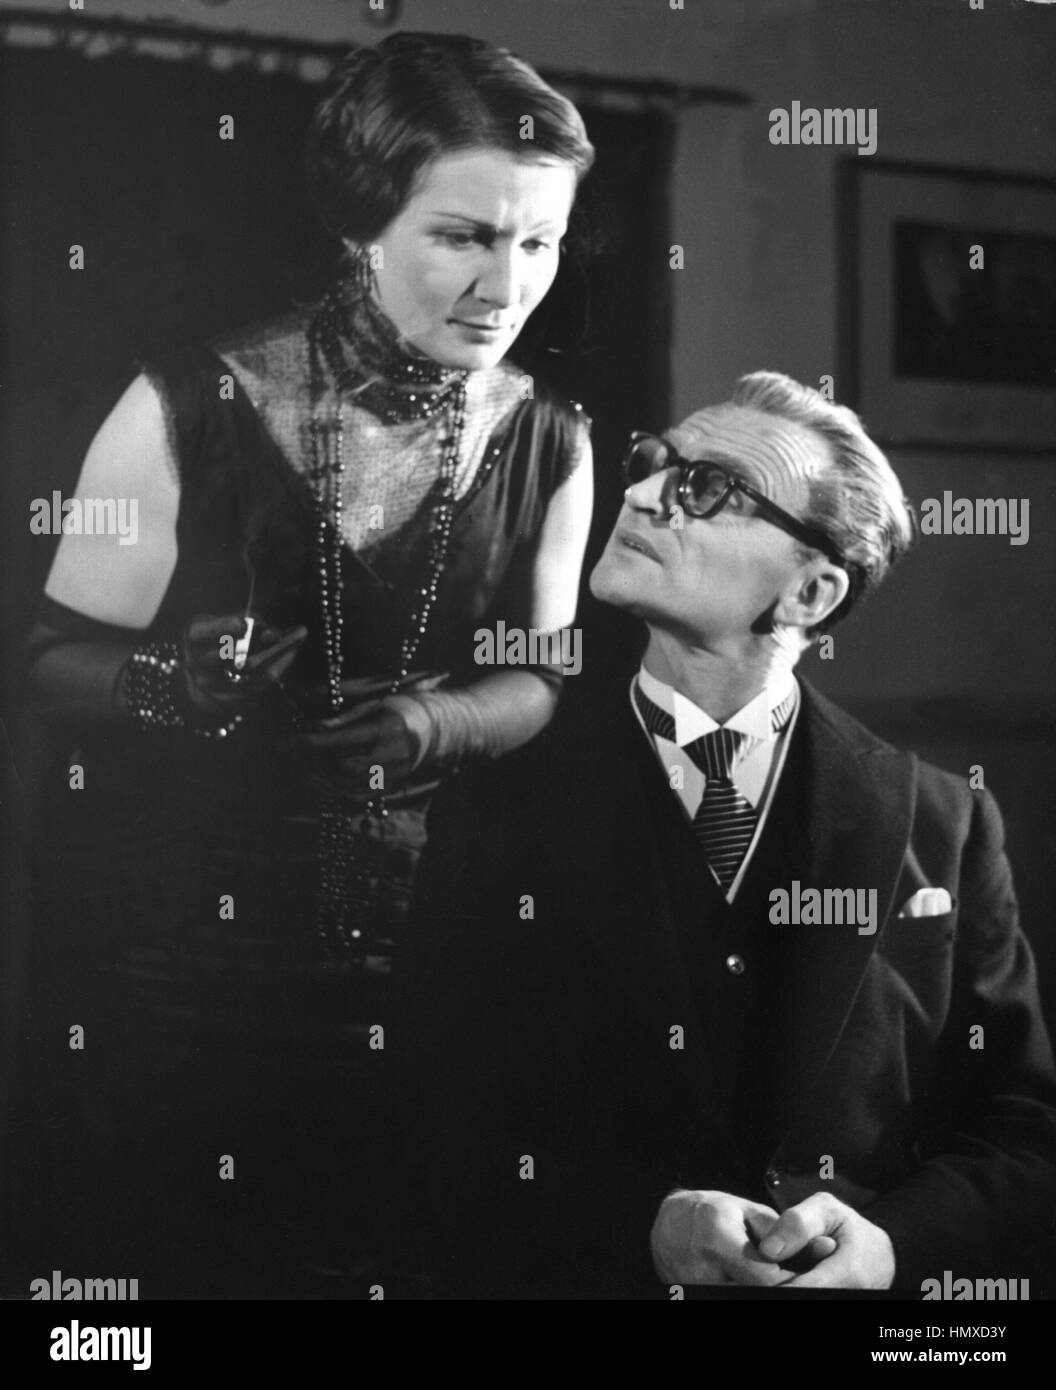 ARCHIVE - Actress Inge Kellerc in the role of aula Clothilde Clausen, with Herwart Grosse as Wolfgang Clausen during - Stock Image